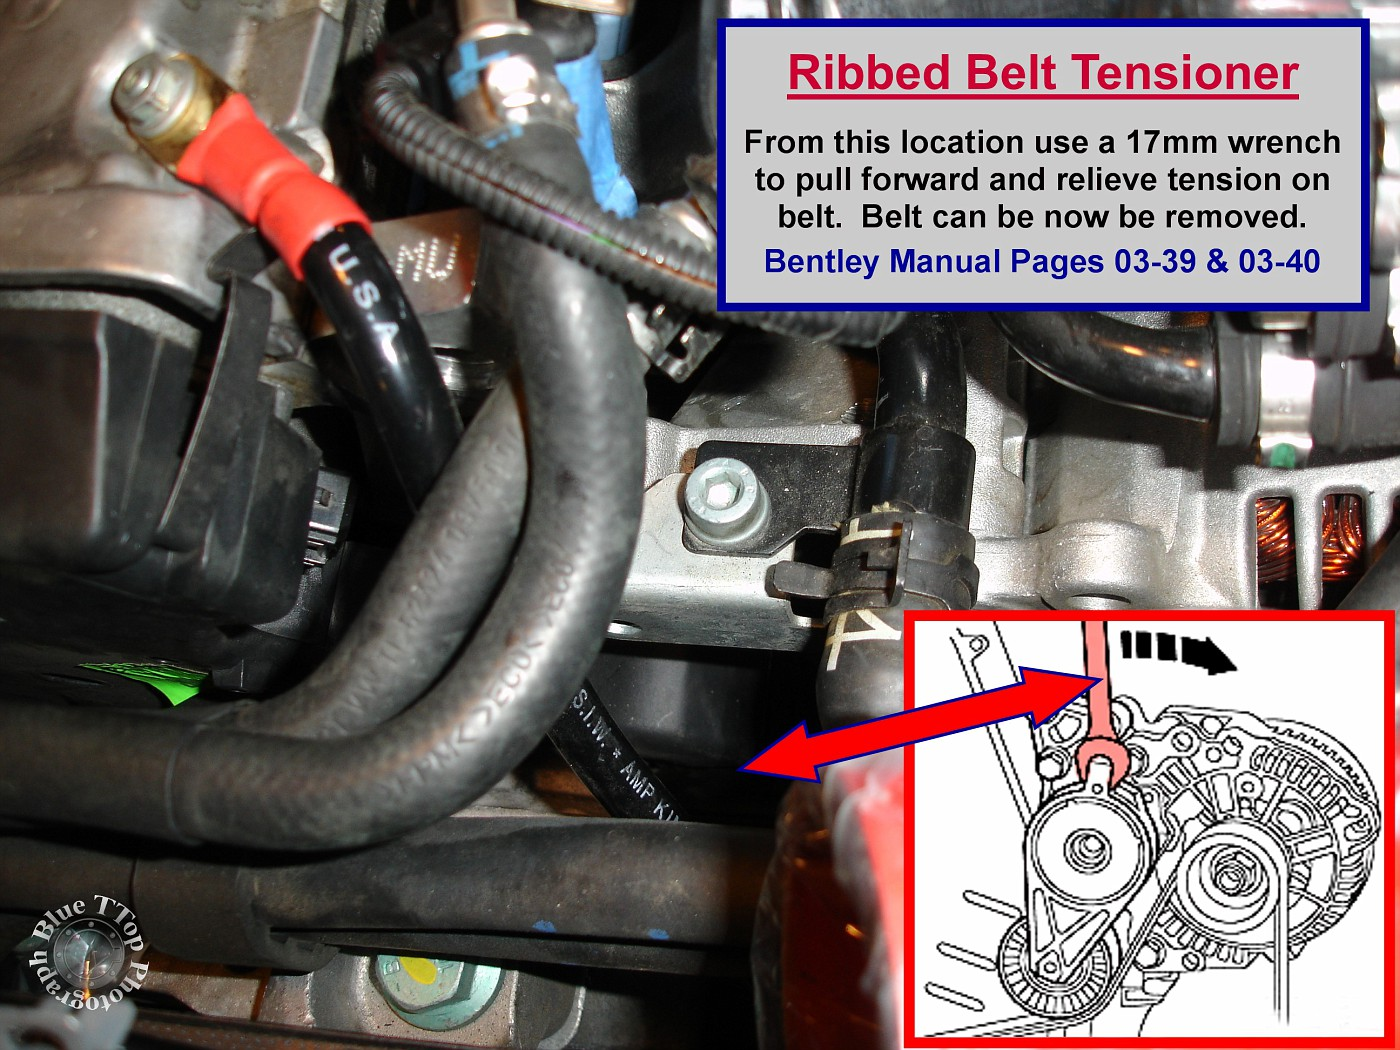 Once the Ribbed Belt is removed the Tensioner can be removed. It is held in  place by 3 - 13mm head bolts. Remove the 3 bolts and remove the Tensioner.